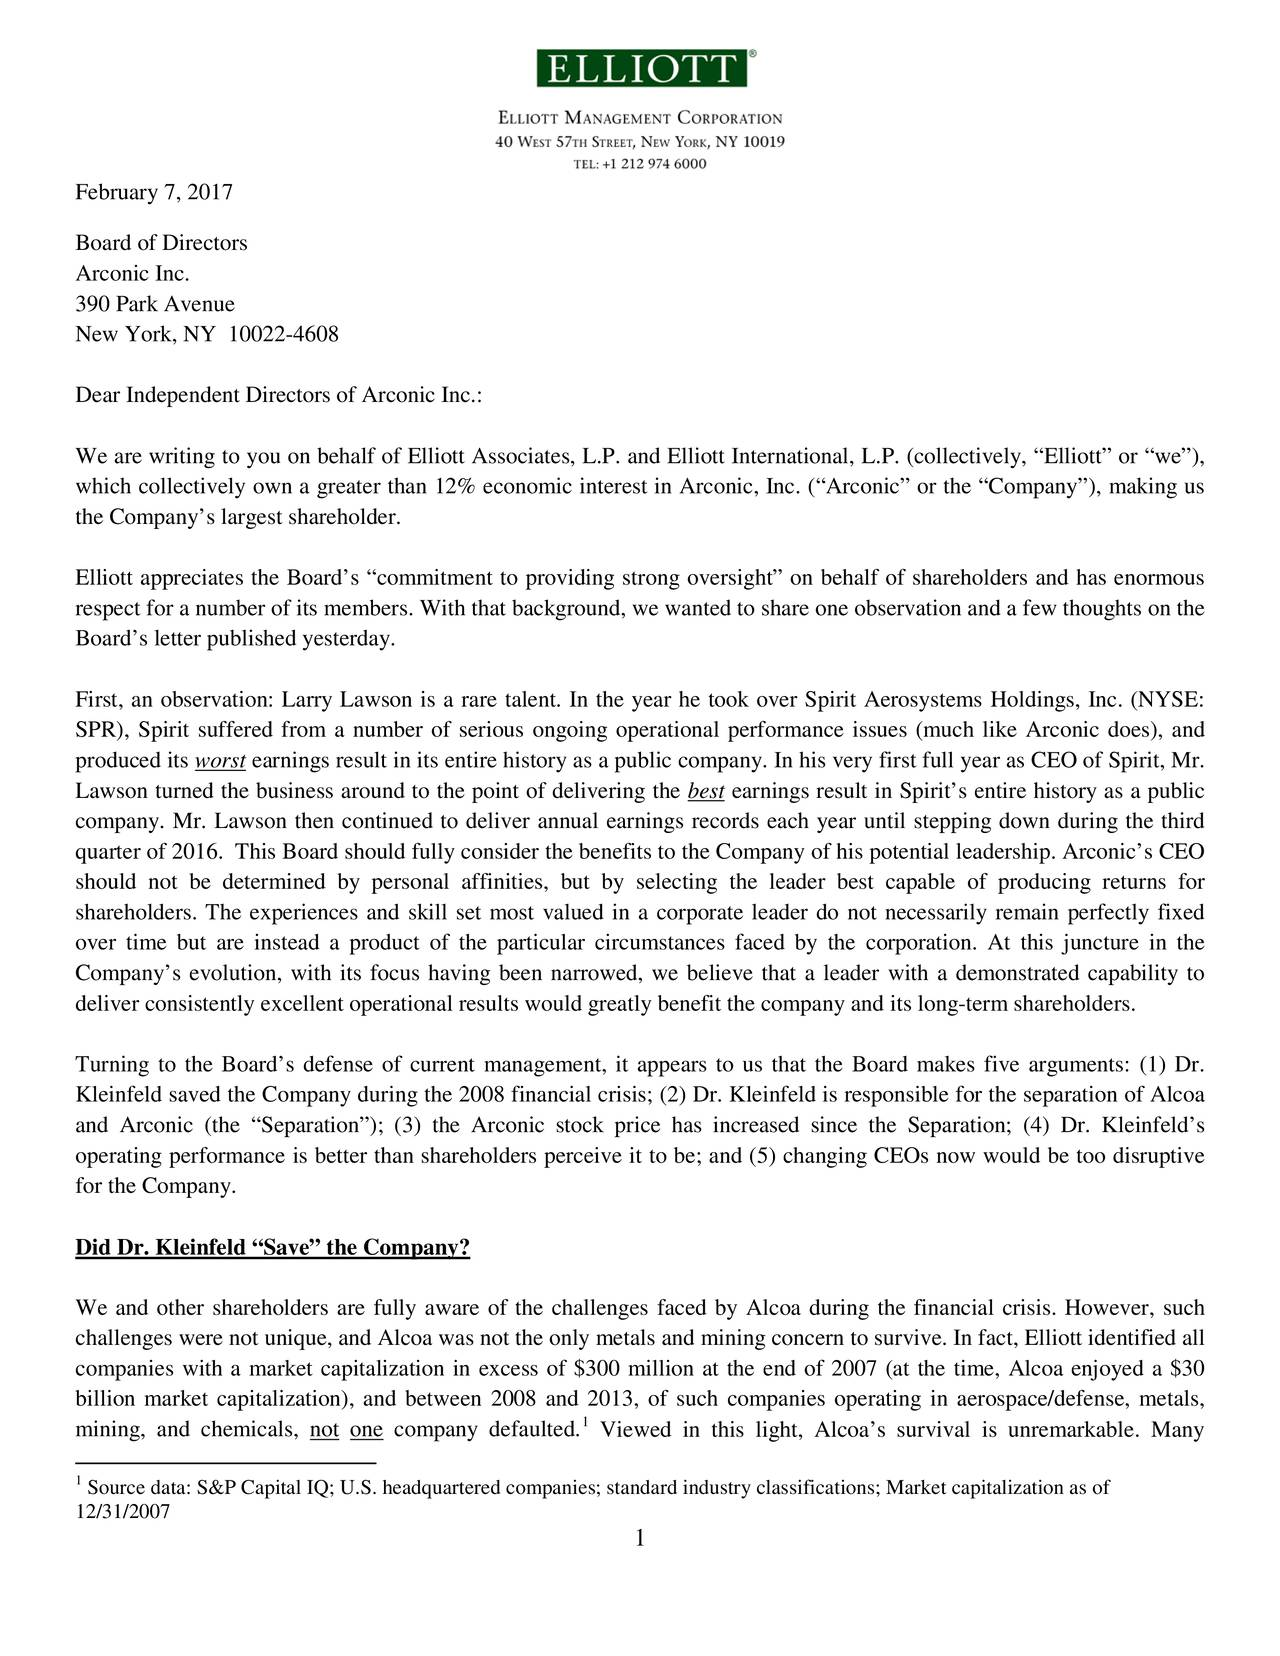 Board of Directors Arconic Inc. 390 Park Avenue New York, NY 10022-4608 Dear Independent Directors of Arconic Inc.: We are writing to you on behalf of Elliott Associates, L.P. and Elliott International, L.P. (collectively, Elliott or we), which collectively own a greater than 12% economic interest in Arconic, Inc. (Arconic or the Company), making us the Companys largest shareholder. Elliott appreciates the Boards commitment to providing strong oversight on behalf of shareholders and has enormous respect for a number of its members. With that background, we wanted to share one observationand a few thoughts on the Boards letter published yesterday. First, an observation: Larry Lawson is a rare talent. In the year he took over Spirit Aerosystems Holdings, Inc. (NYSE: SPR), Spirit suffered from a number of serious ongoing operational performance issues (much like Arconic do es), and produced its worst earnings result in its entire history as a public company. In his very first full year as CEO of Spirit, Mr. Lawson turned the business around to the point of delivering the best earnings result in Spirits entire history as a public company. Mr. Lawson then continued to deliver annual earnings records each year until stepping down during the third quarter of 2016. This Board should fully consider the benefits to the Company of his potential leadership. Arconics CEO should not be determined by personal affinities, but by selecting the leader best capable of producing returns for shareholders. The experiences and skill set most valued in a corporate leader do not necessarily remain perfectly fixed over time but are instead a product of the particular circumstances faced by the corporation. At this juncture in the Companys evolution, with its focus having been narrowed, we believe that a leader with a demonstrated capability to deliver consistently excellent operational results would greatly benefit the company and its long-term shareholders. Turning to the Boards defense of 